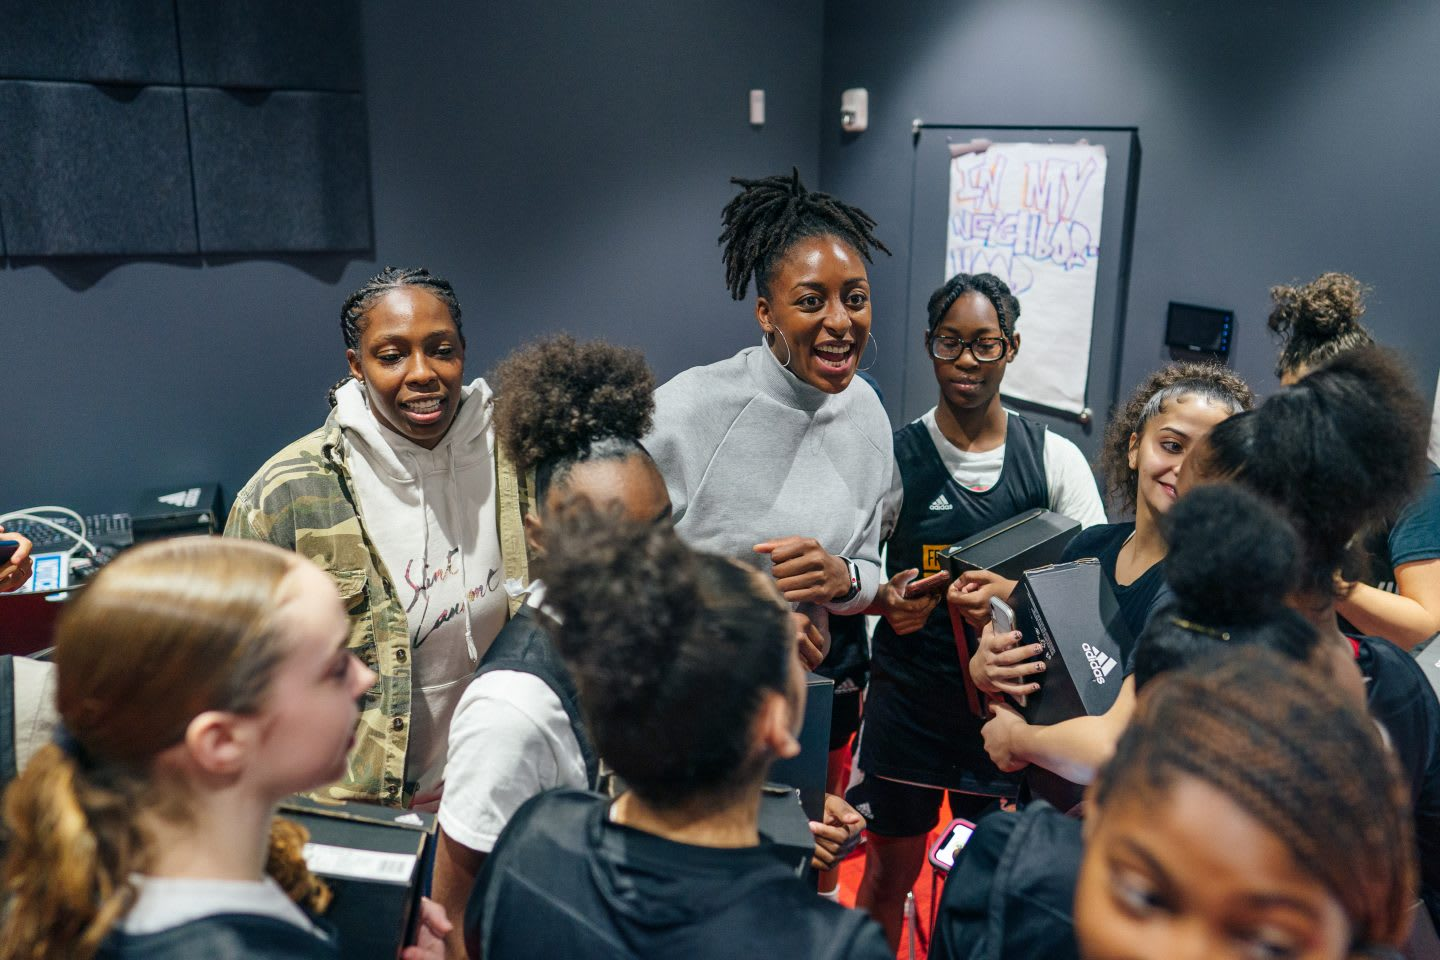 WNBA basketball player Nneka Ogwumike in a group of young players sharing her experiences. Basketball, sports, leadership, role model, icon, GamePlan A.